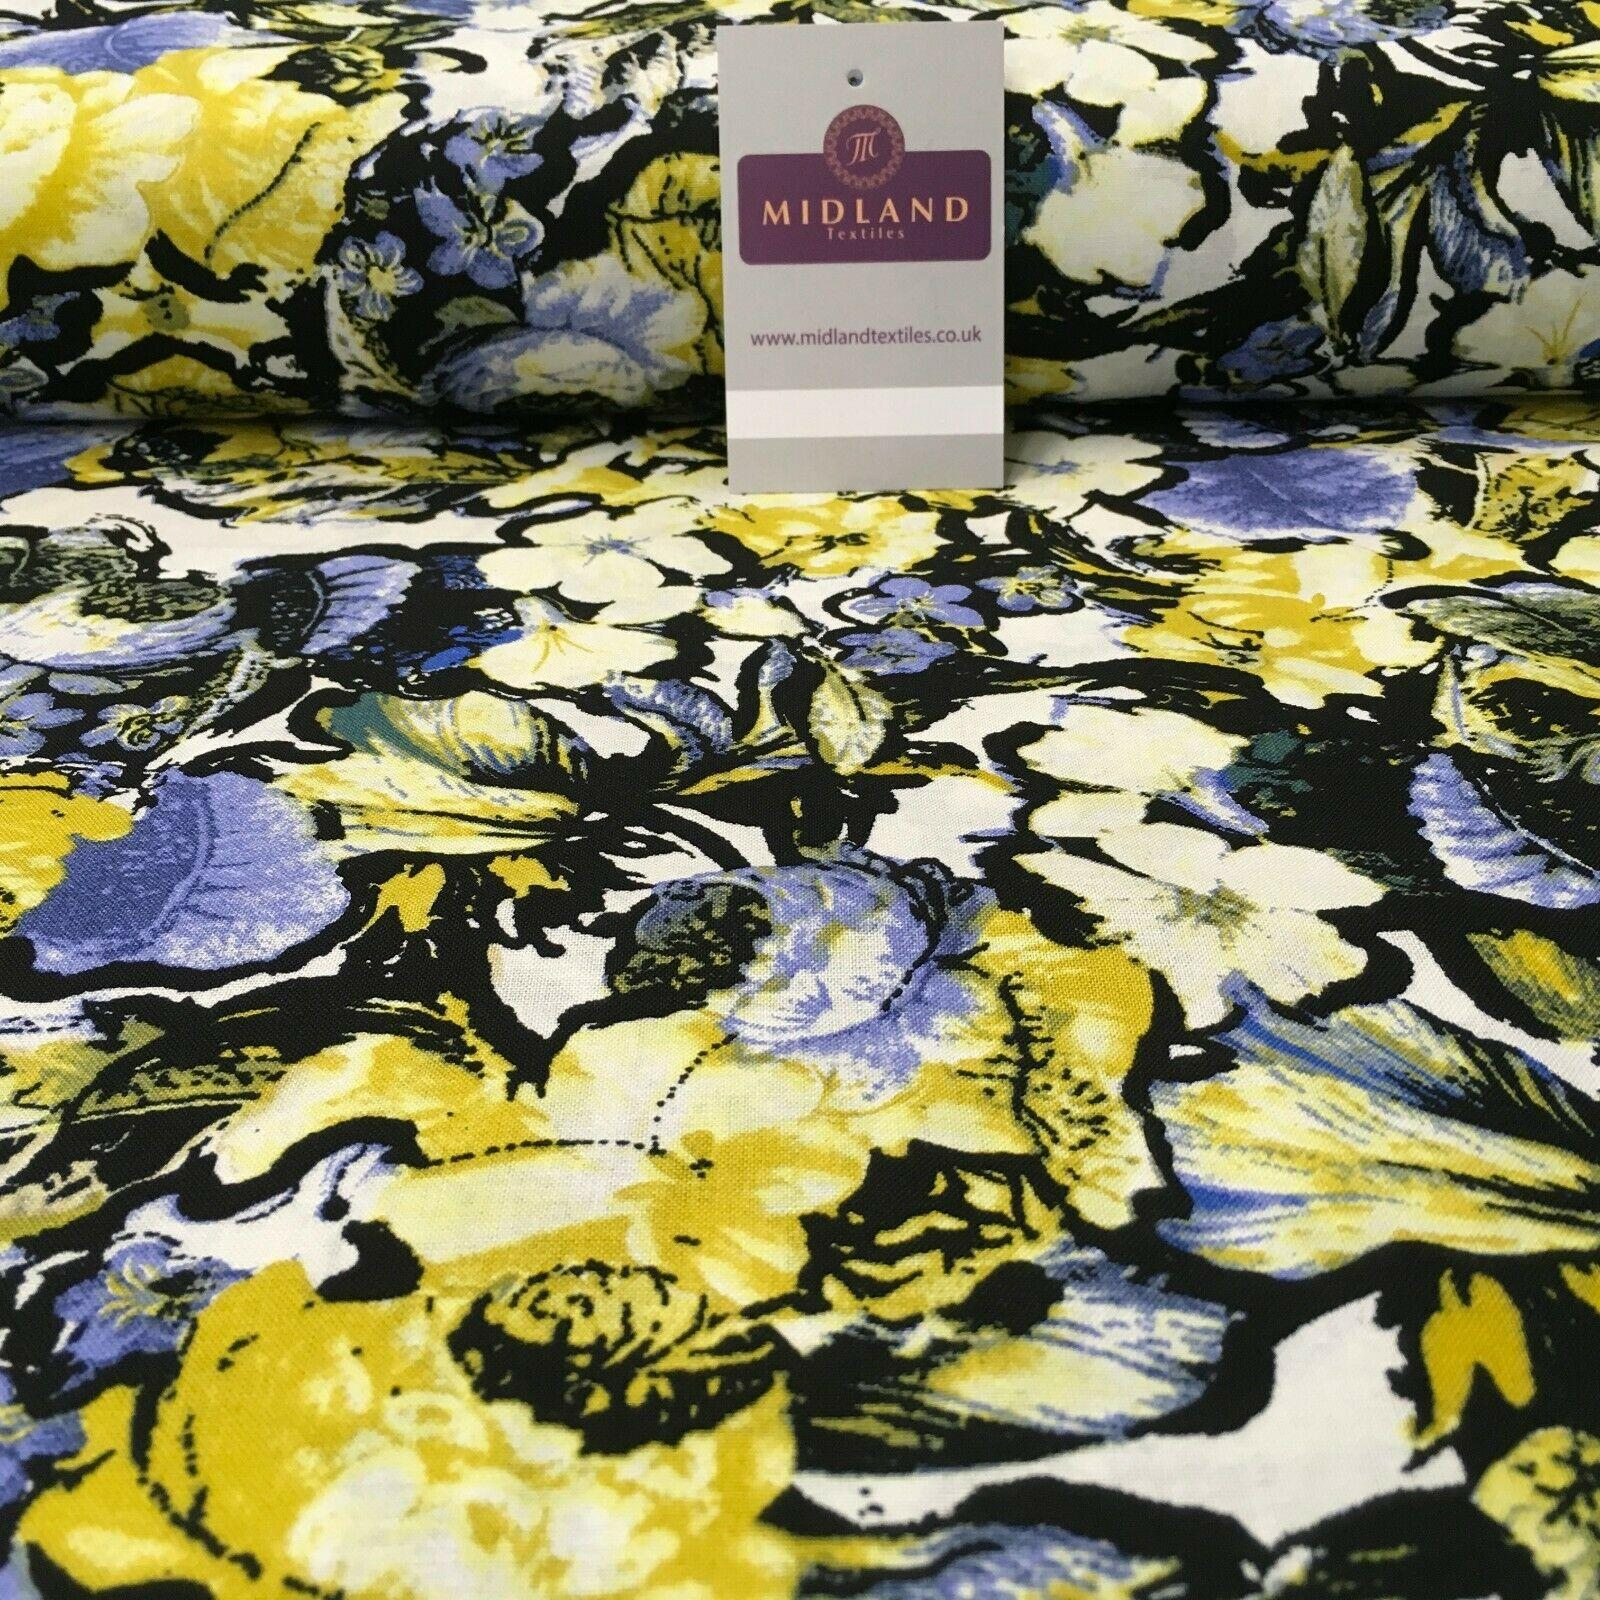 Lemon Blue Floral Printed Cotton Linen Dress Fabric 150cm Wide MK1086-8